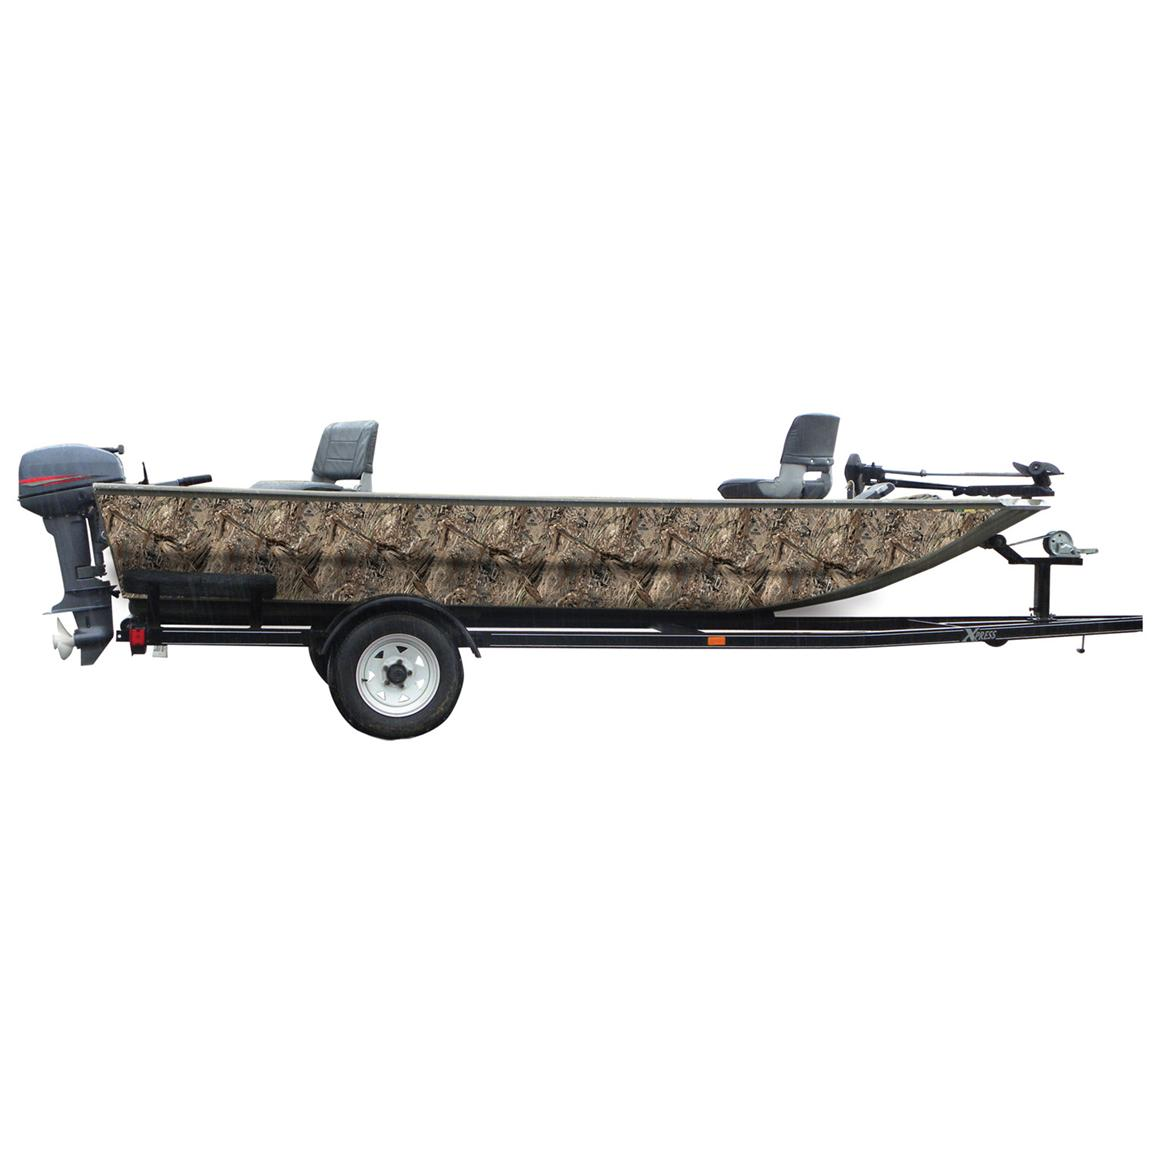 Mossy Oak Graphics® 16 foot Boat Side Camouflage Kit, Duck Blind